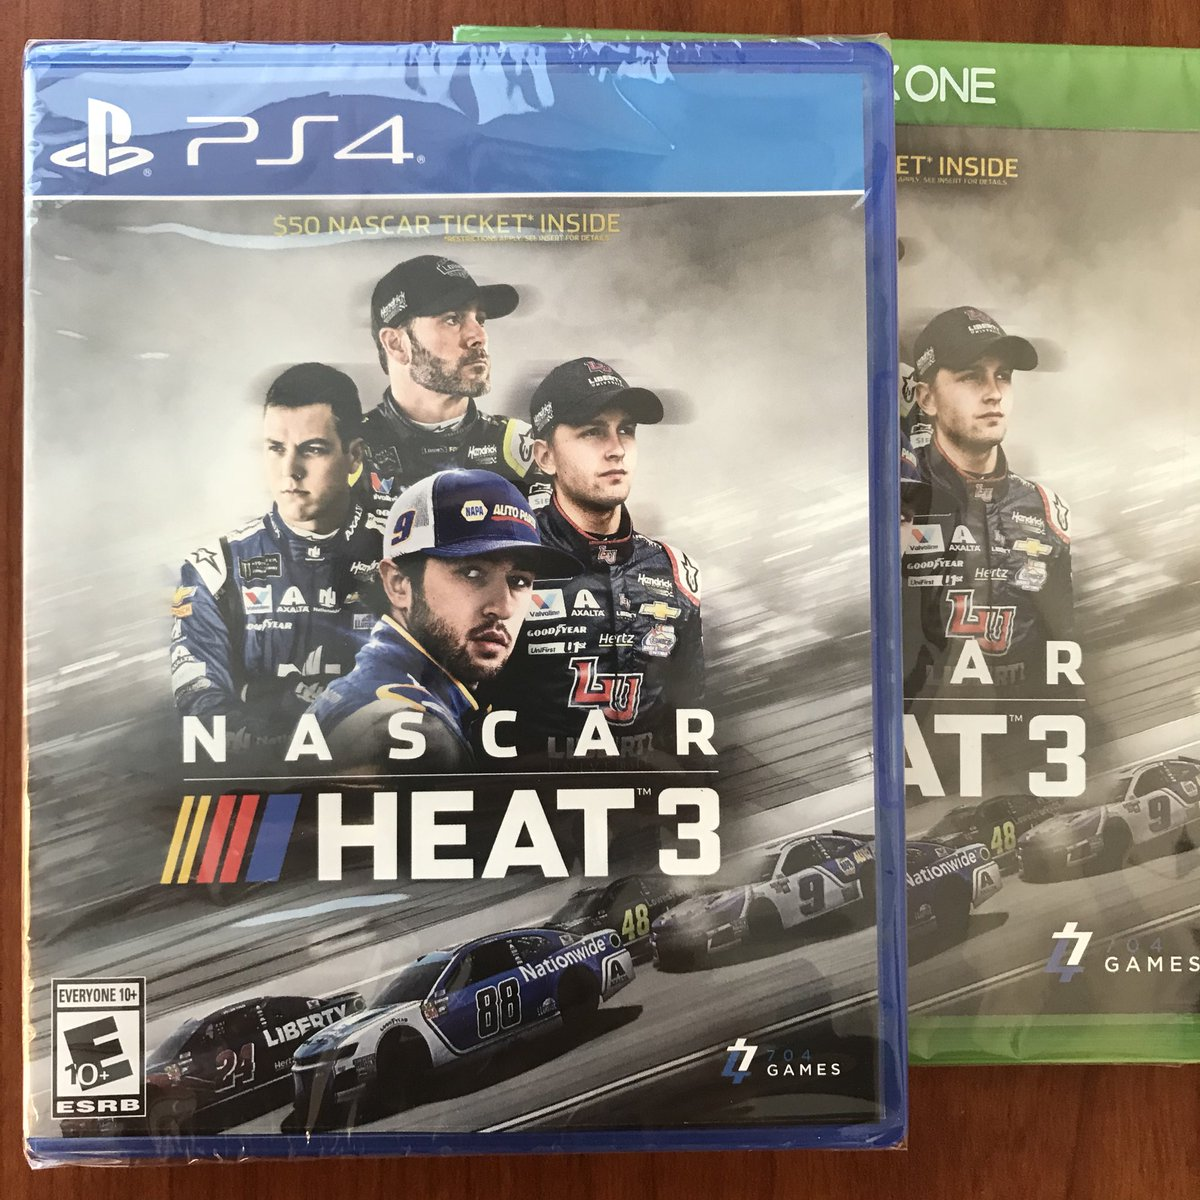 Who wants to win a copy of #NASCARHeat3? RT and reply with your console and we'll pick a winner! #NASCAR